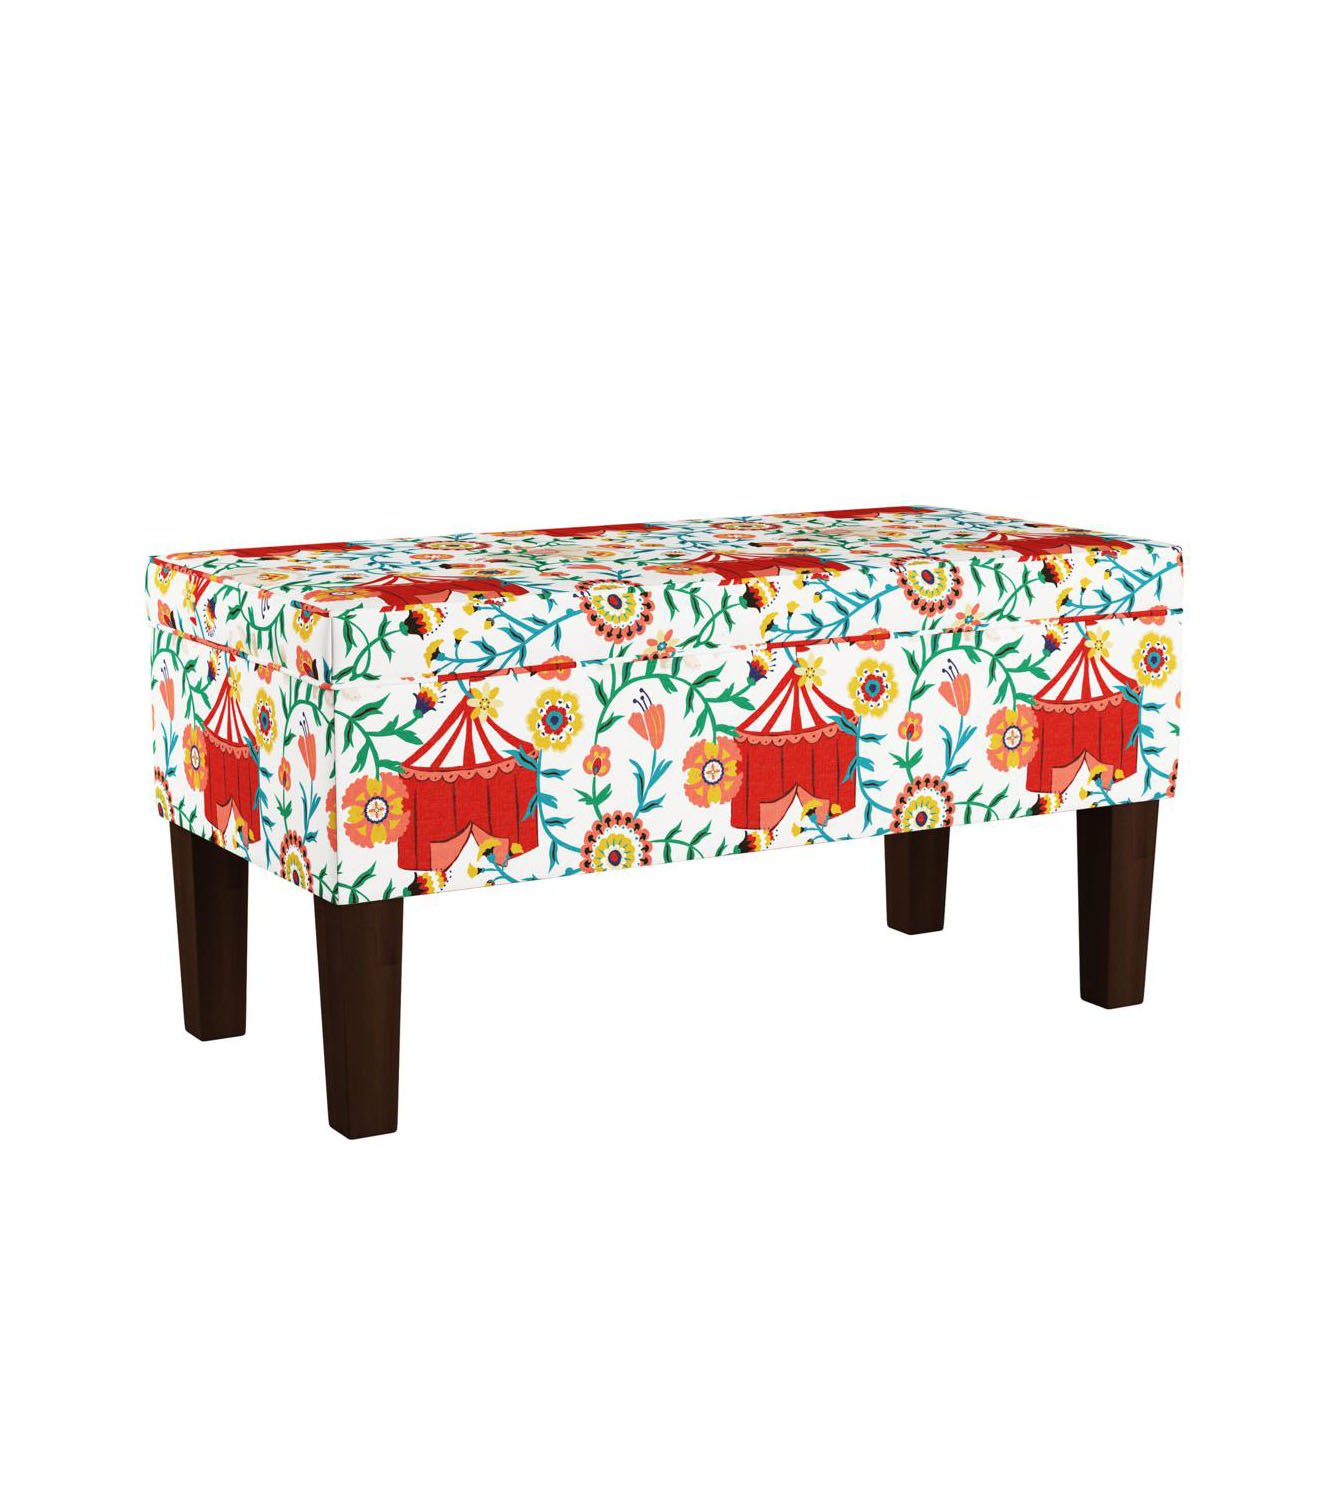 Iris Apfel Storage Bench